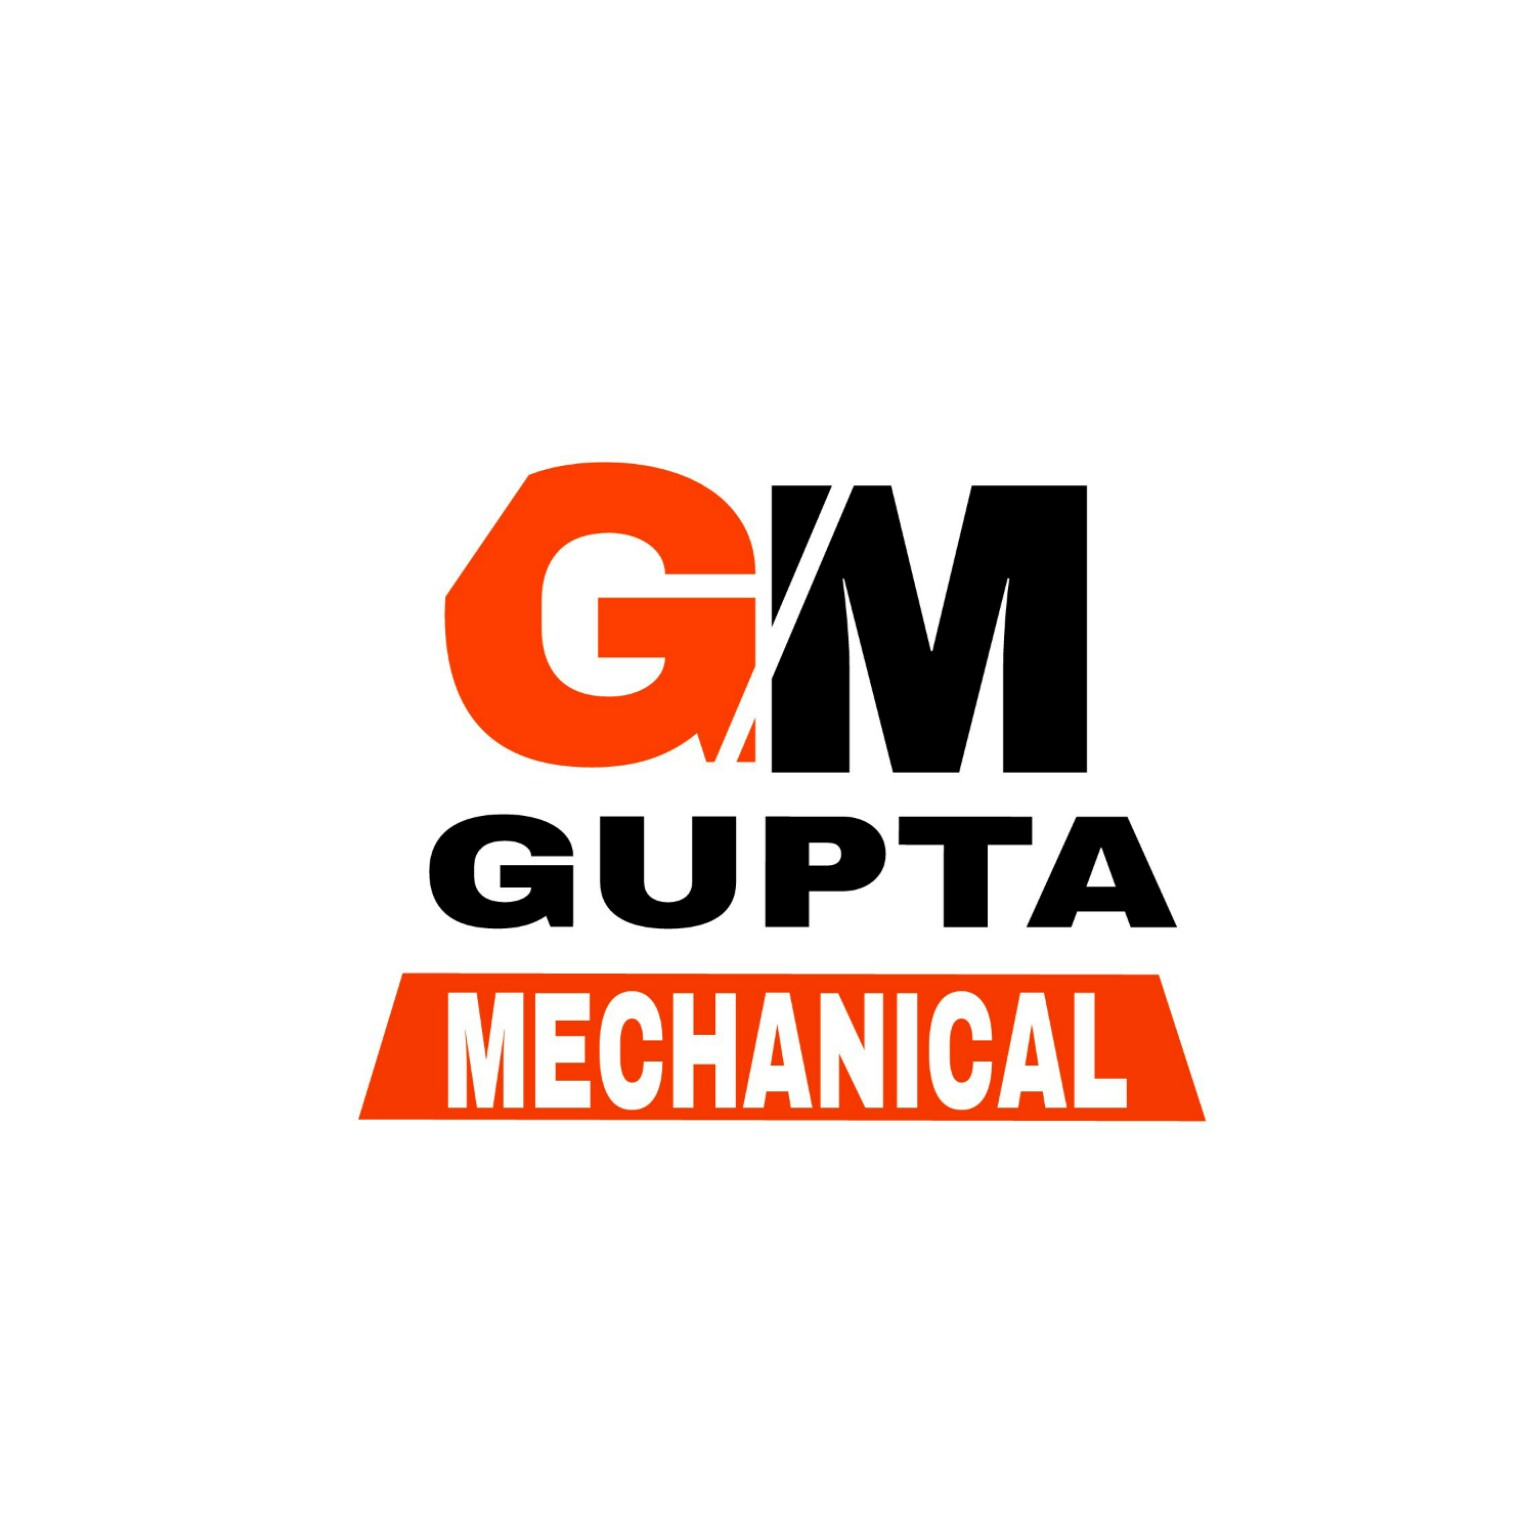 Gupta mechanical